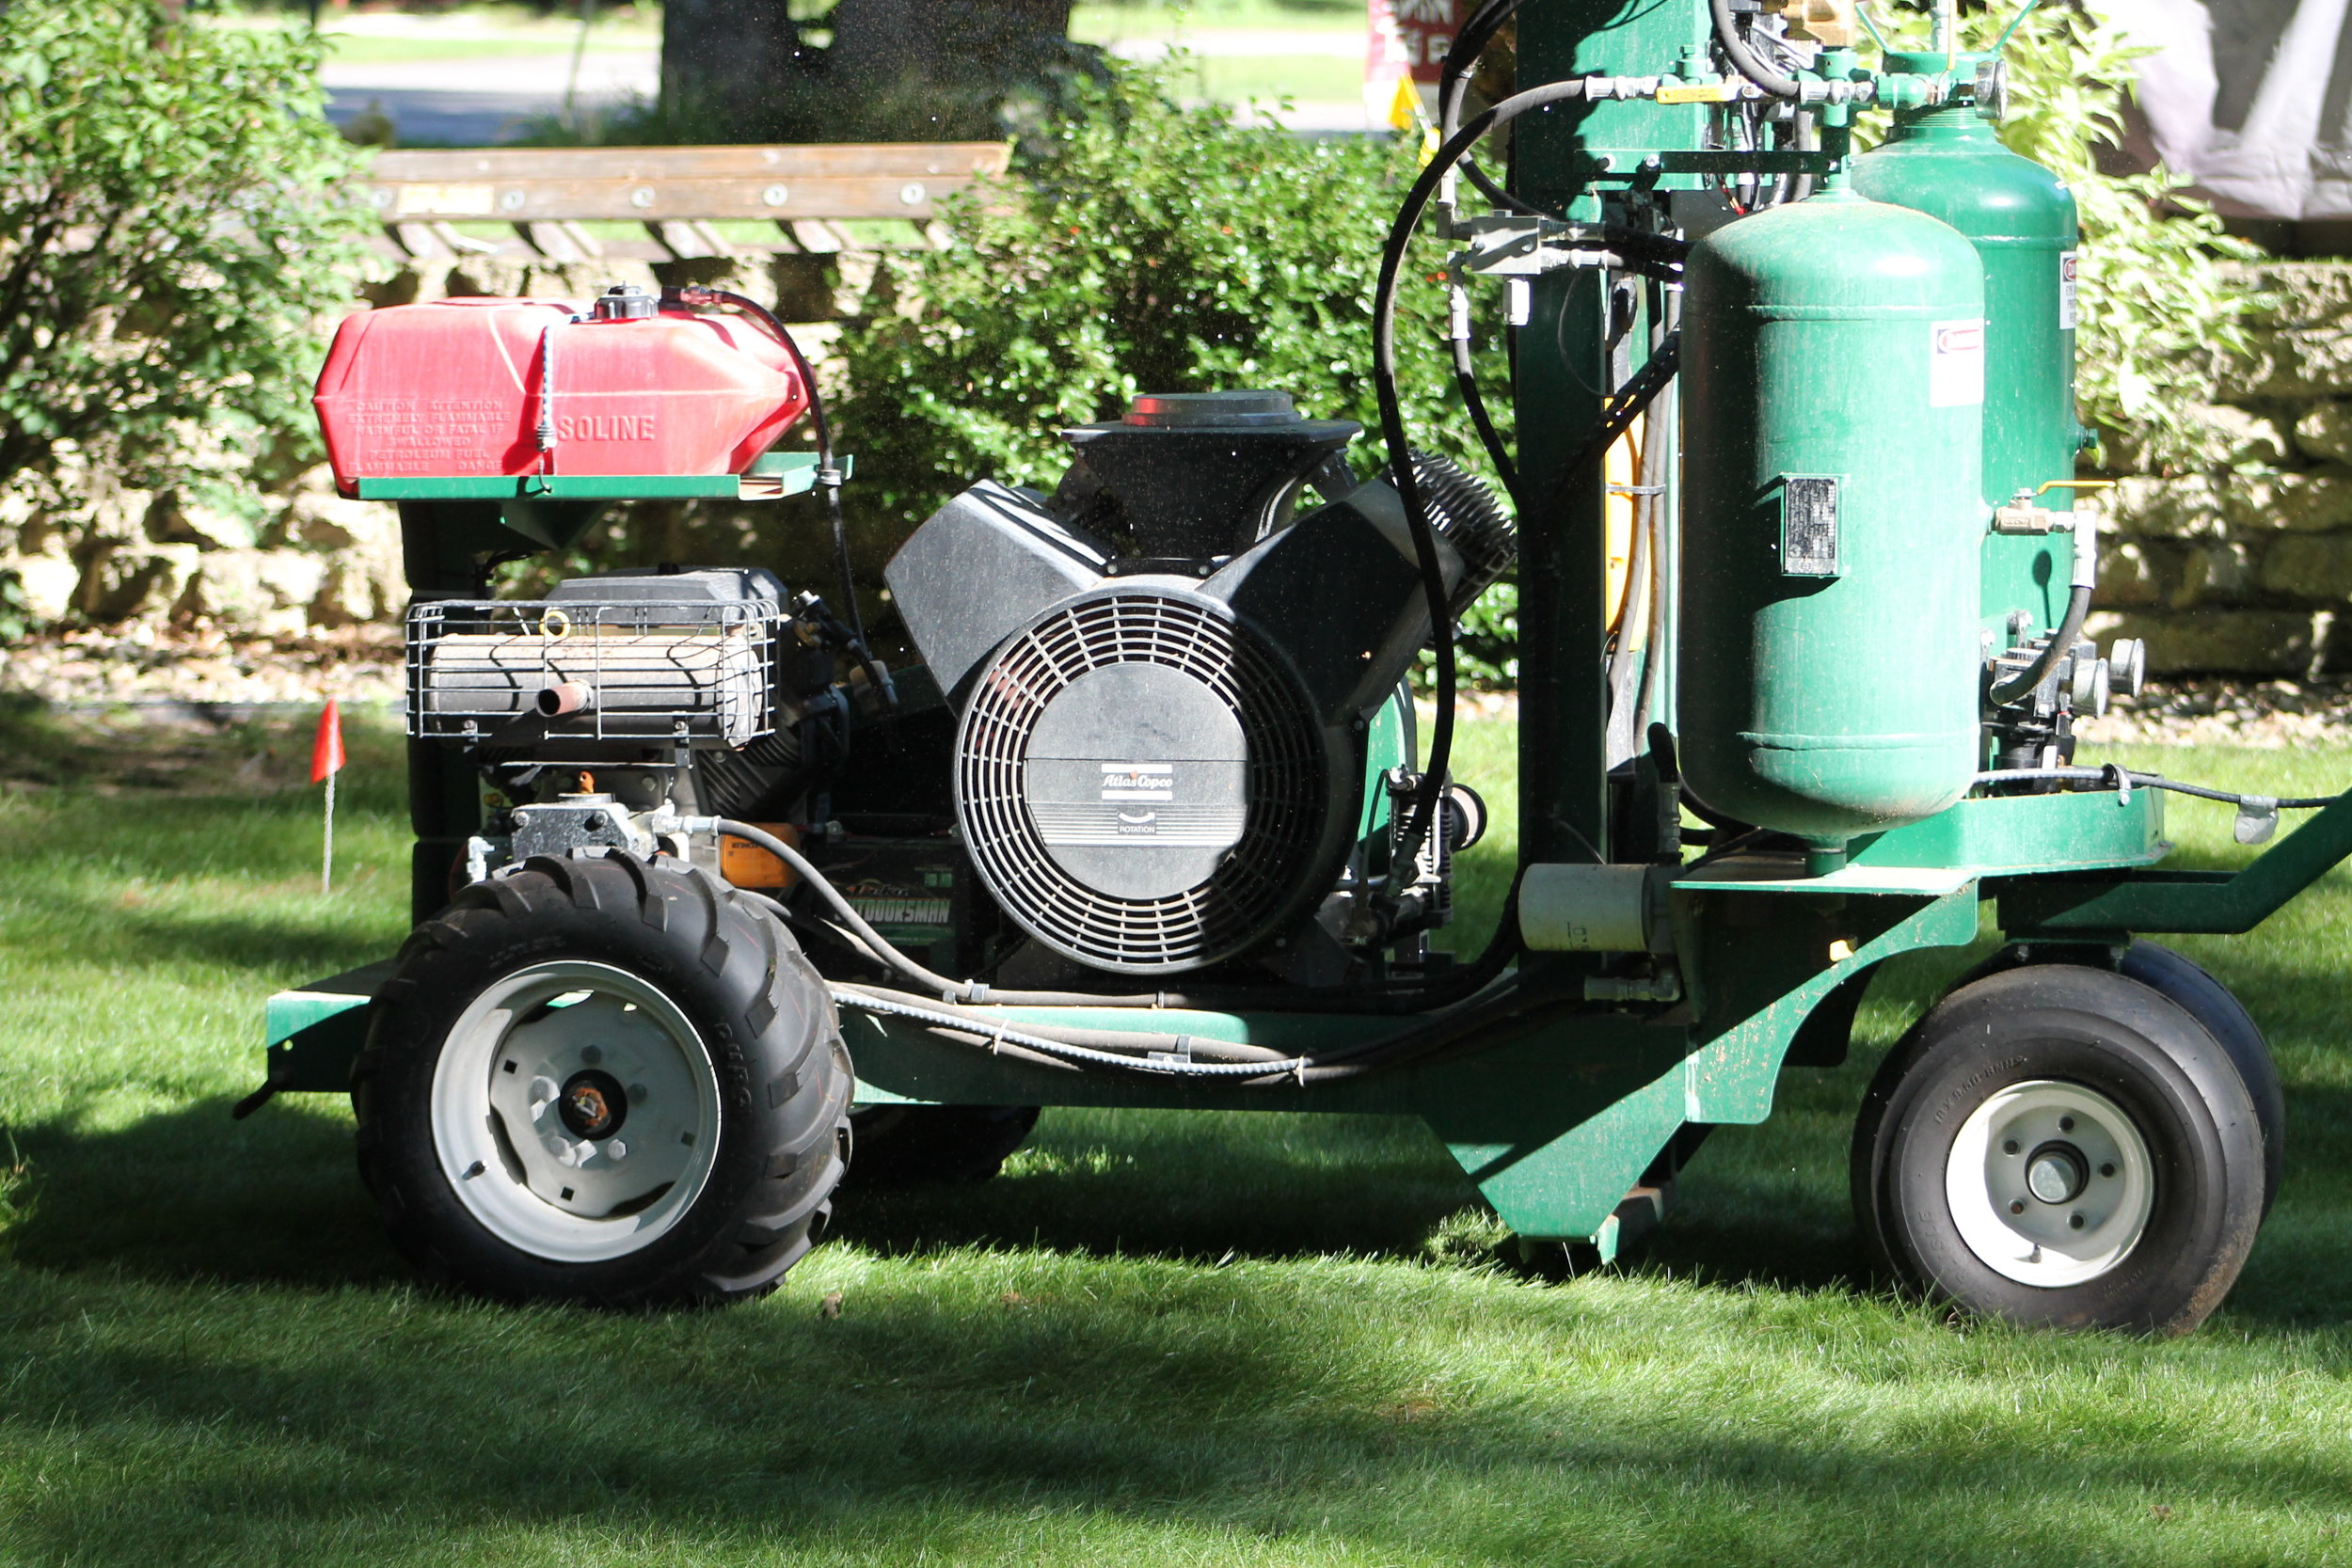 Terralift  Terralift uses a probe and an integral pneumatic hammer to penetrate the soil. It then forces air into the soil at a controllable rate to create a network of fissures and cracks, which breaks up biomat and loosens compacted soil in the drain field.